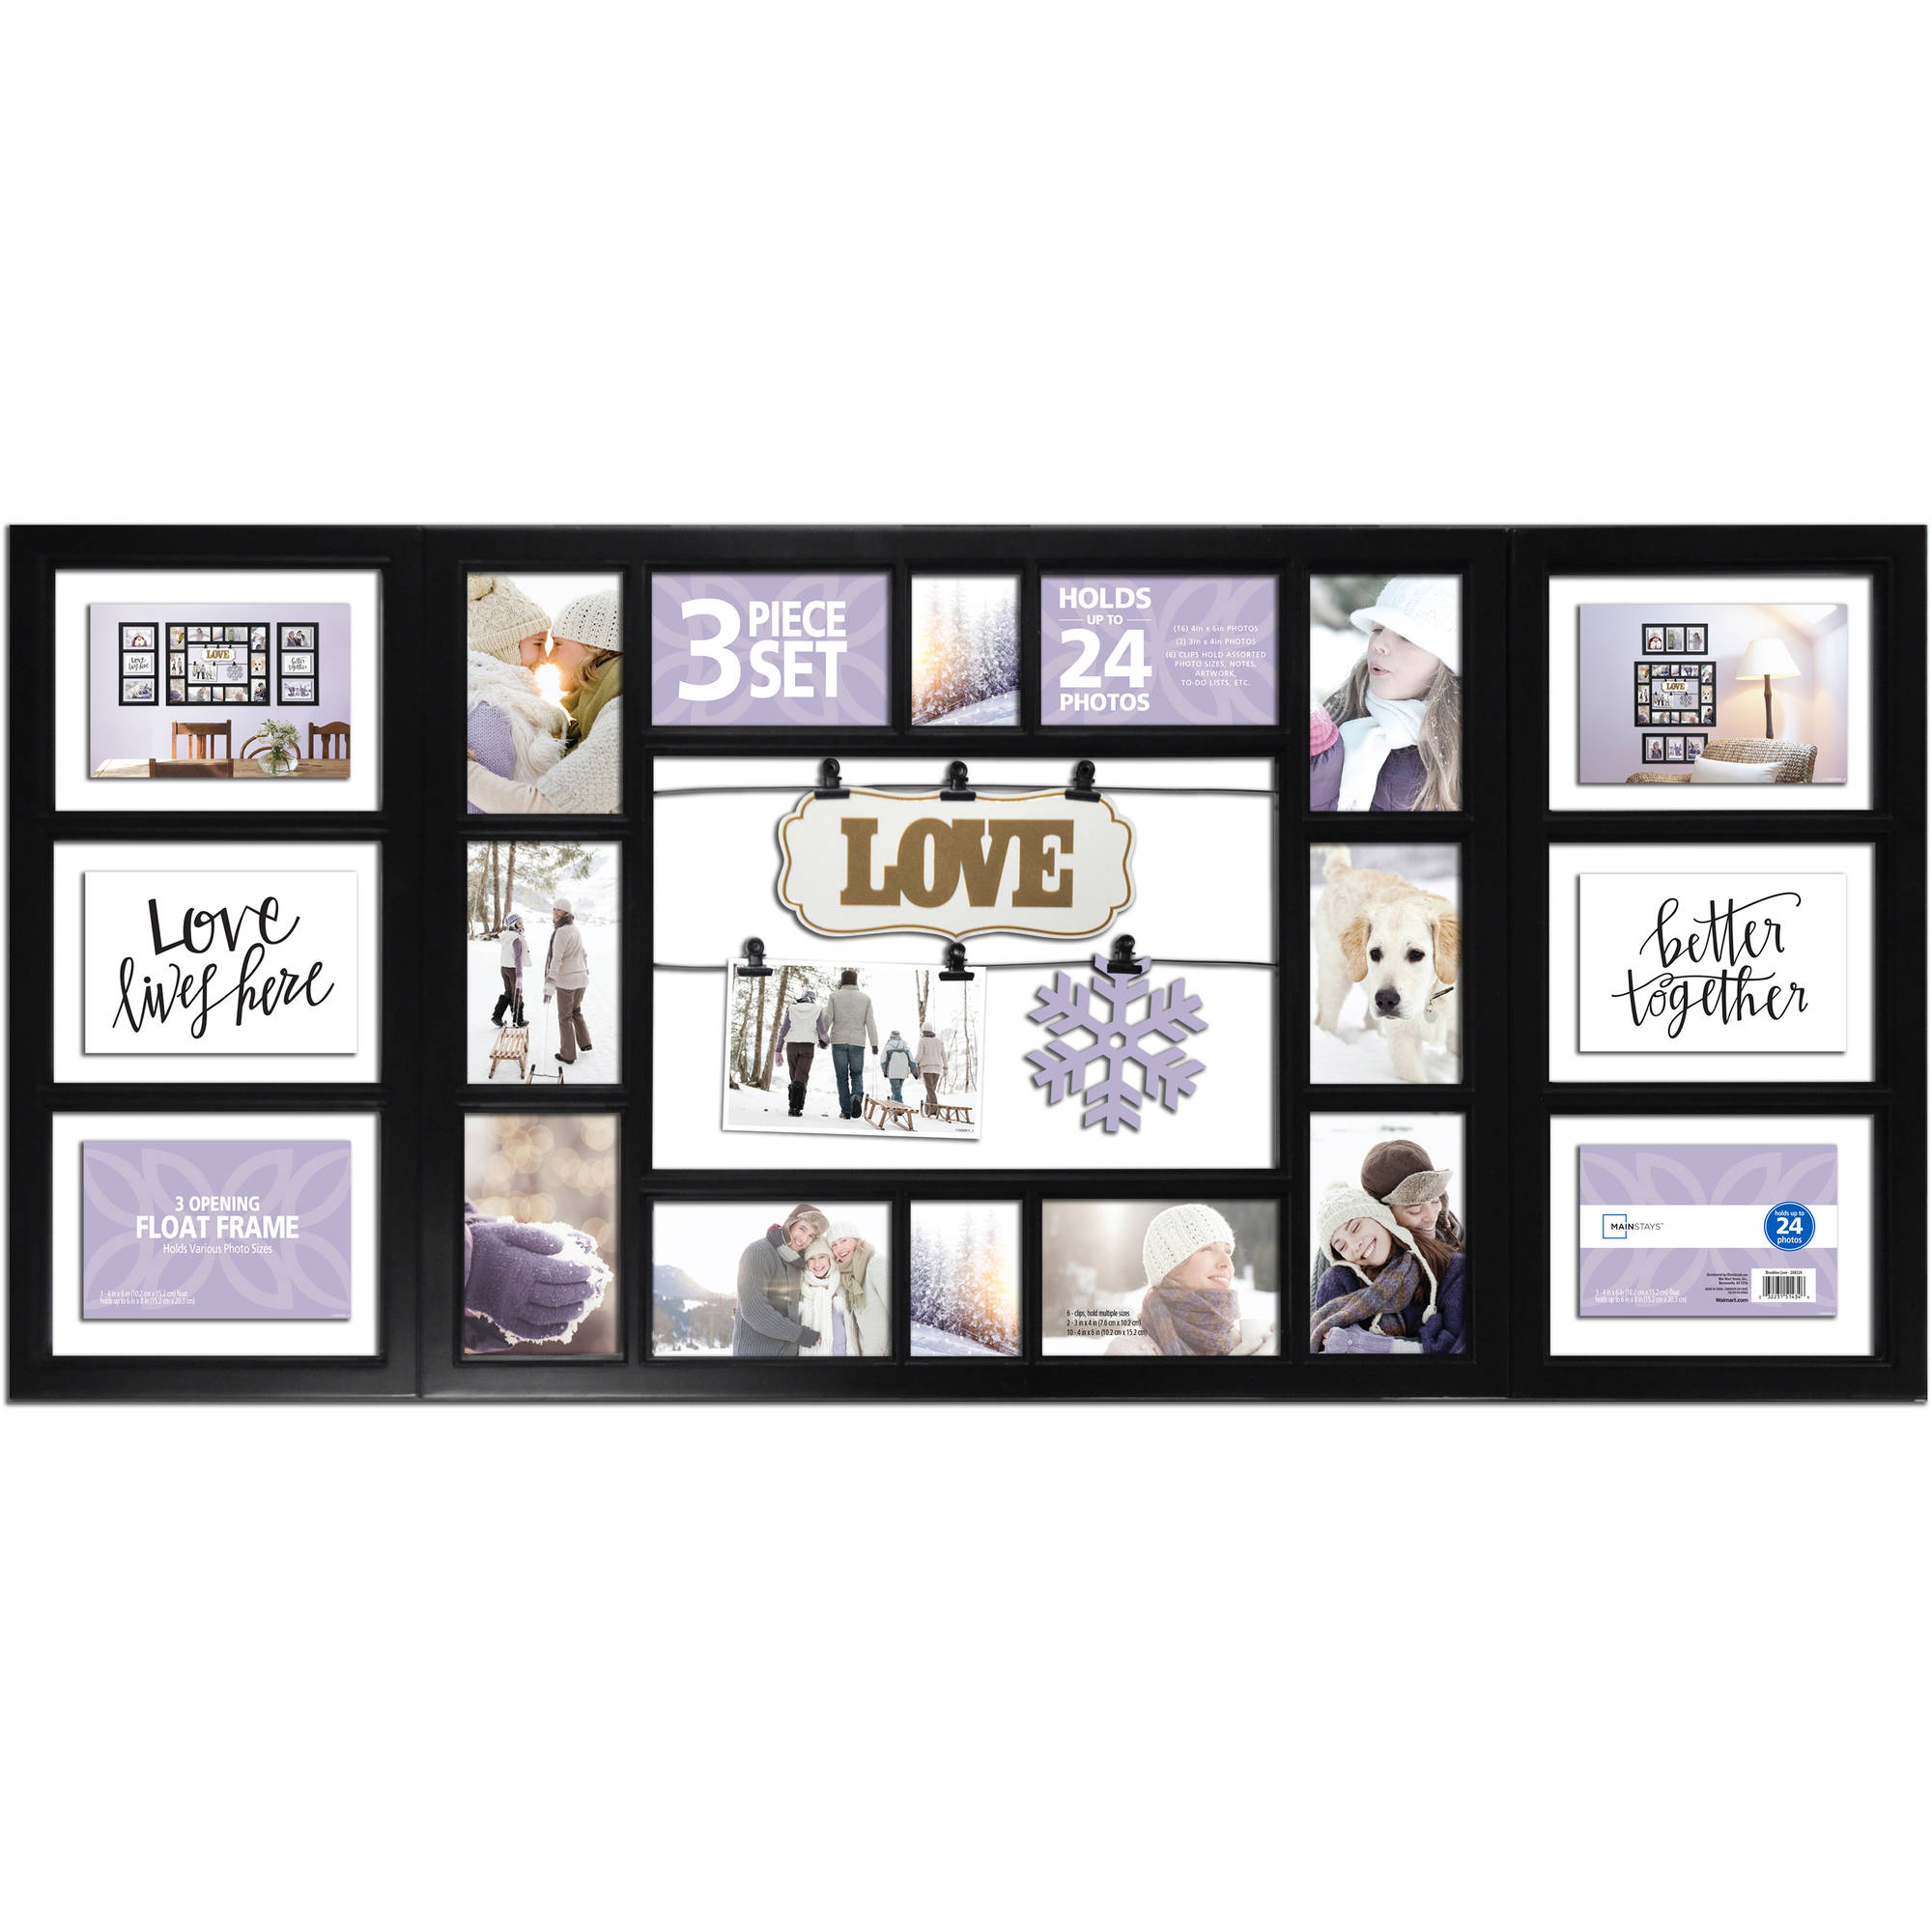 Mainstays 3-Piece Frame Set, 24-Opening Black, Love - Walmart.com